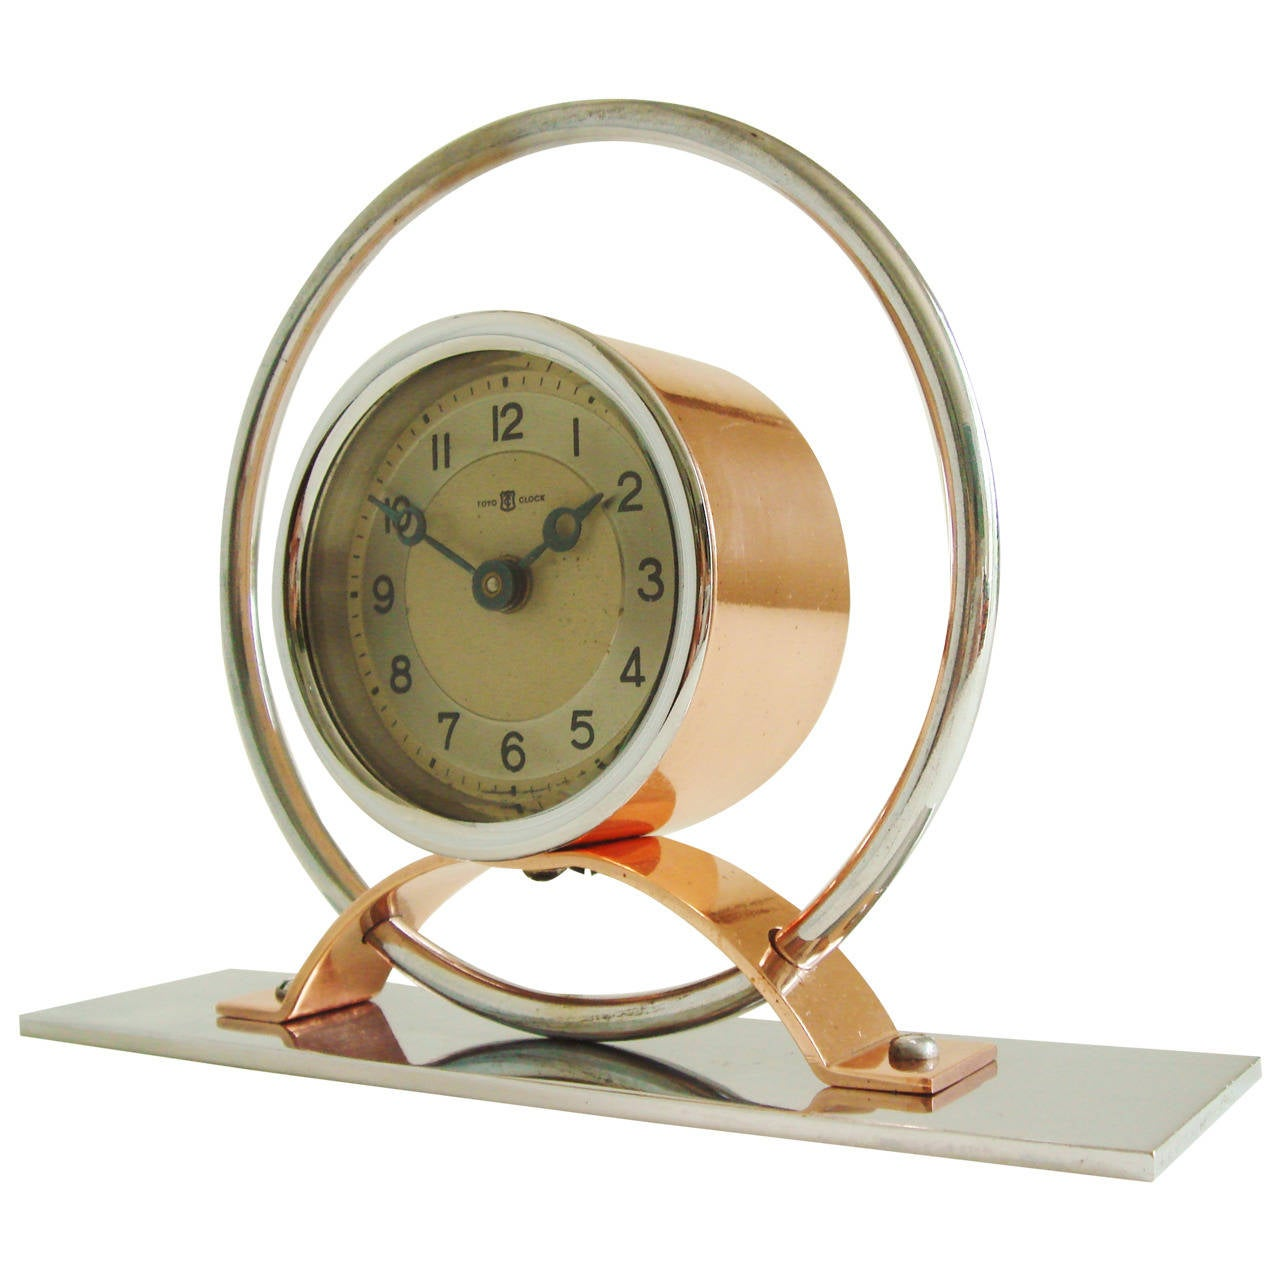 Japanese art deco chrome and copper geometric mechanical Art deco alarm clocks